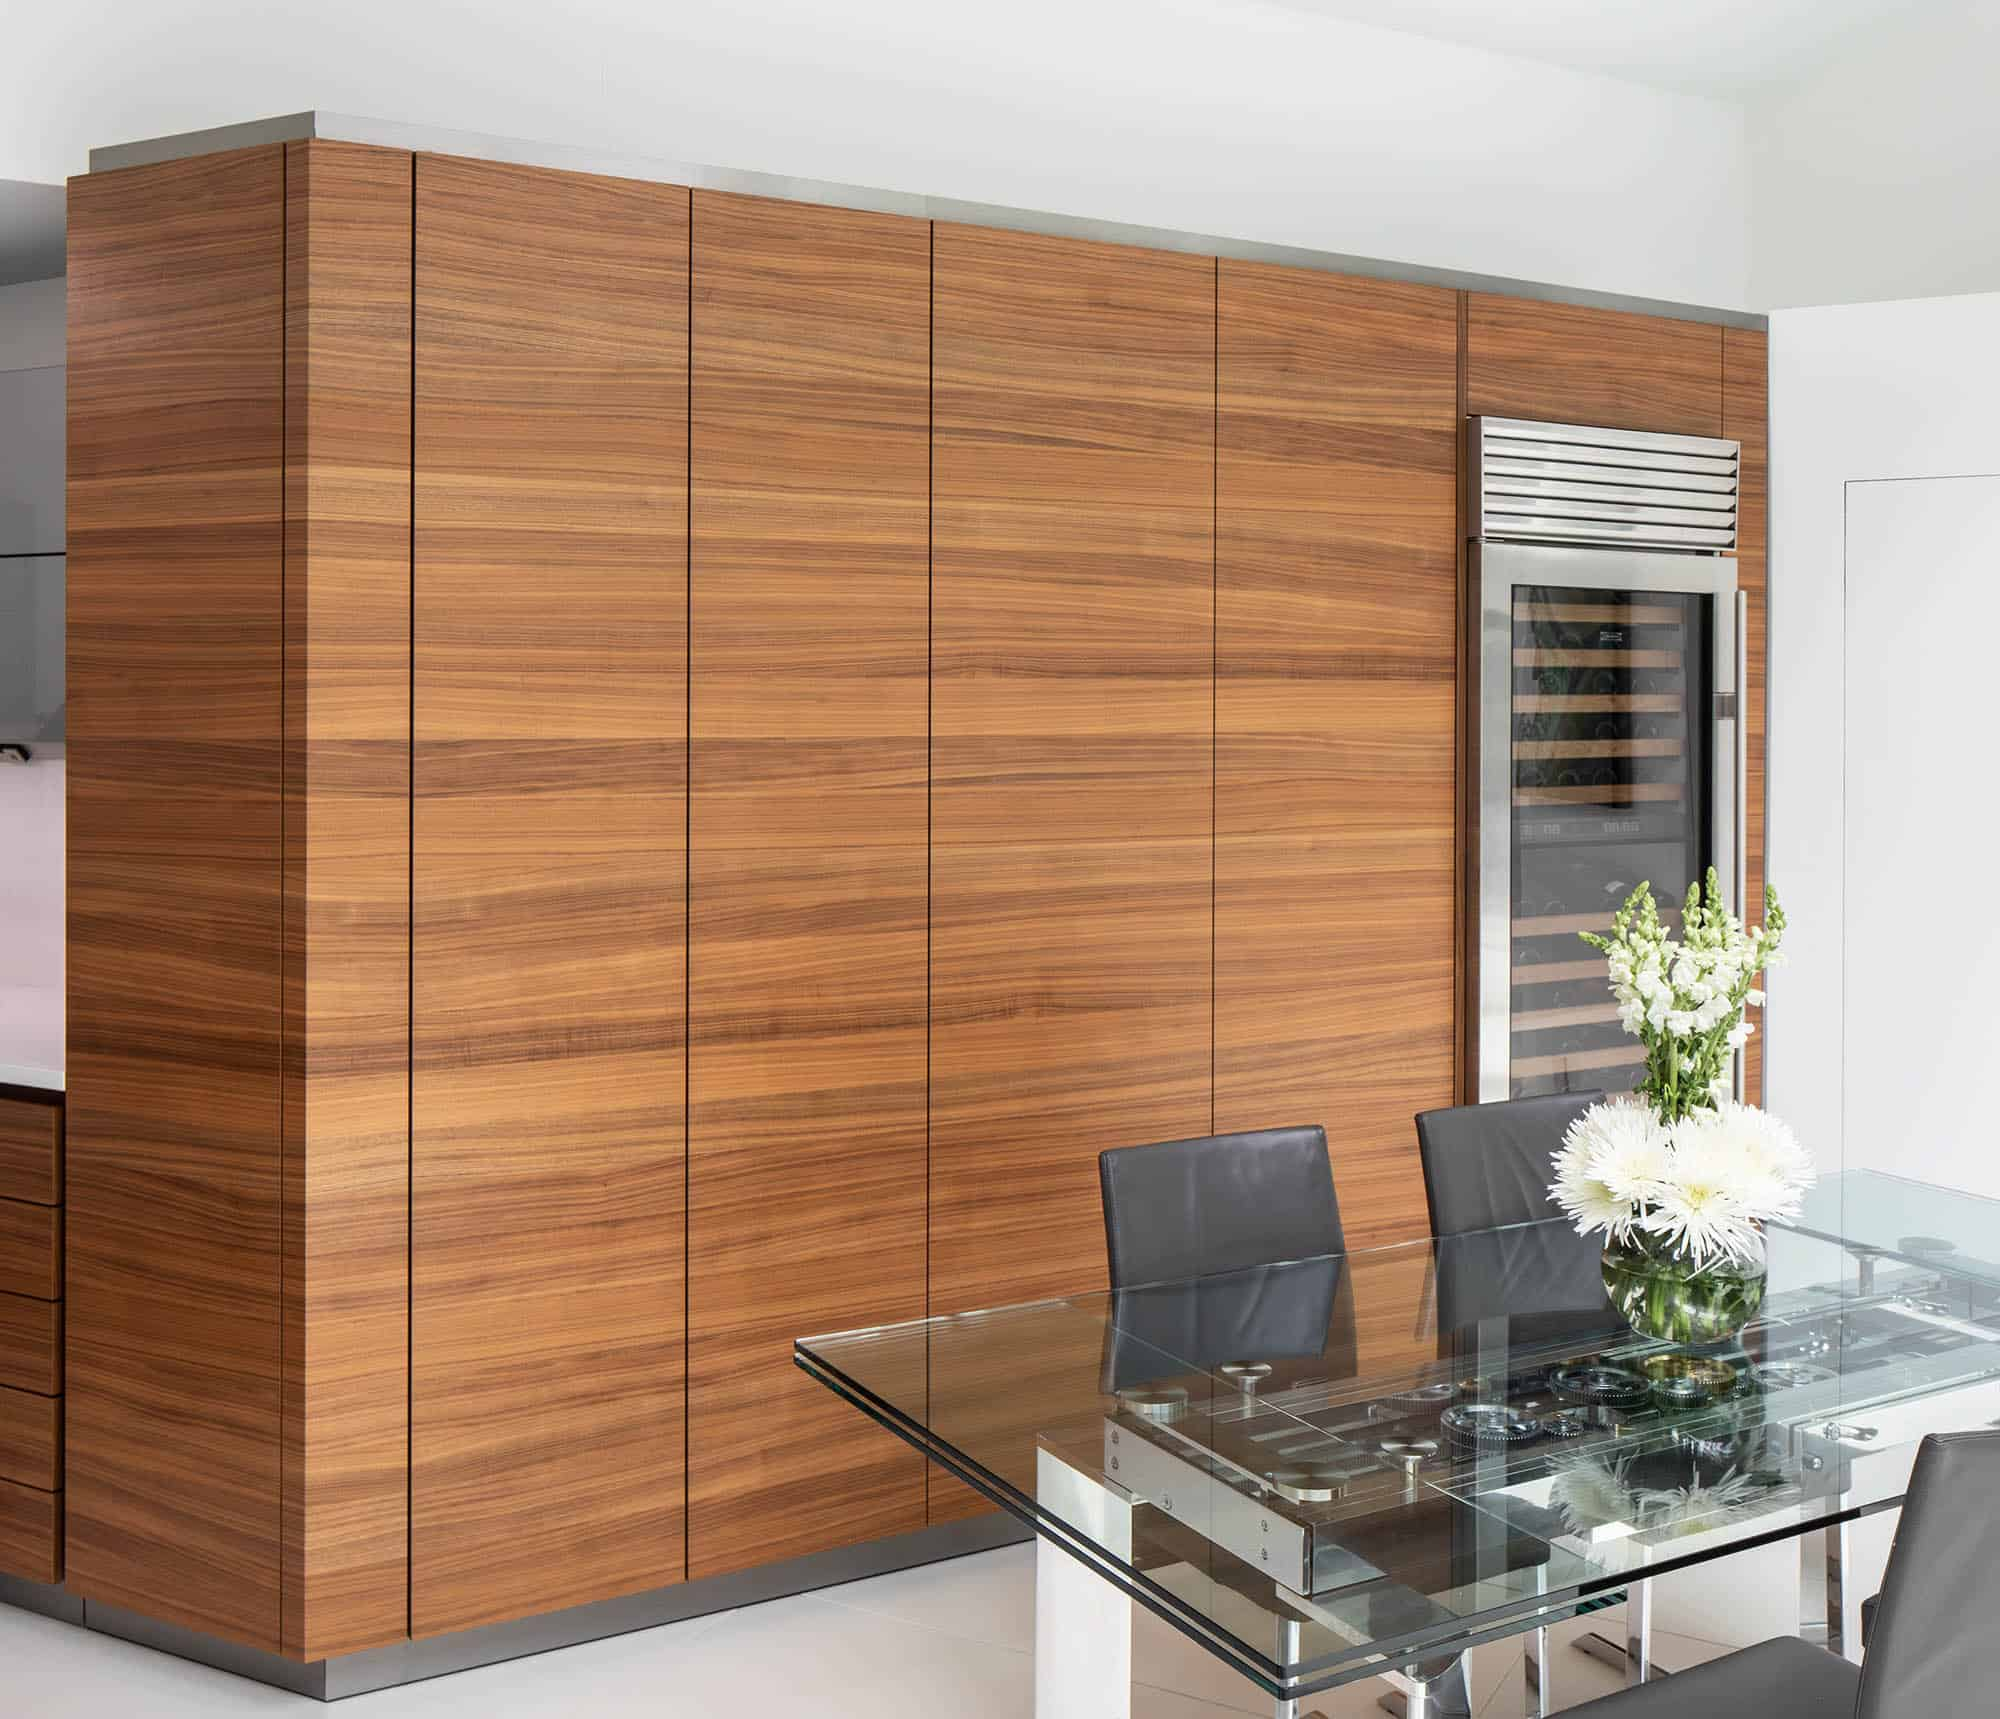 pocket doors conceal a bar and coffee bar with storage